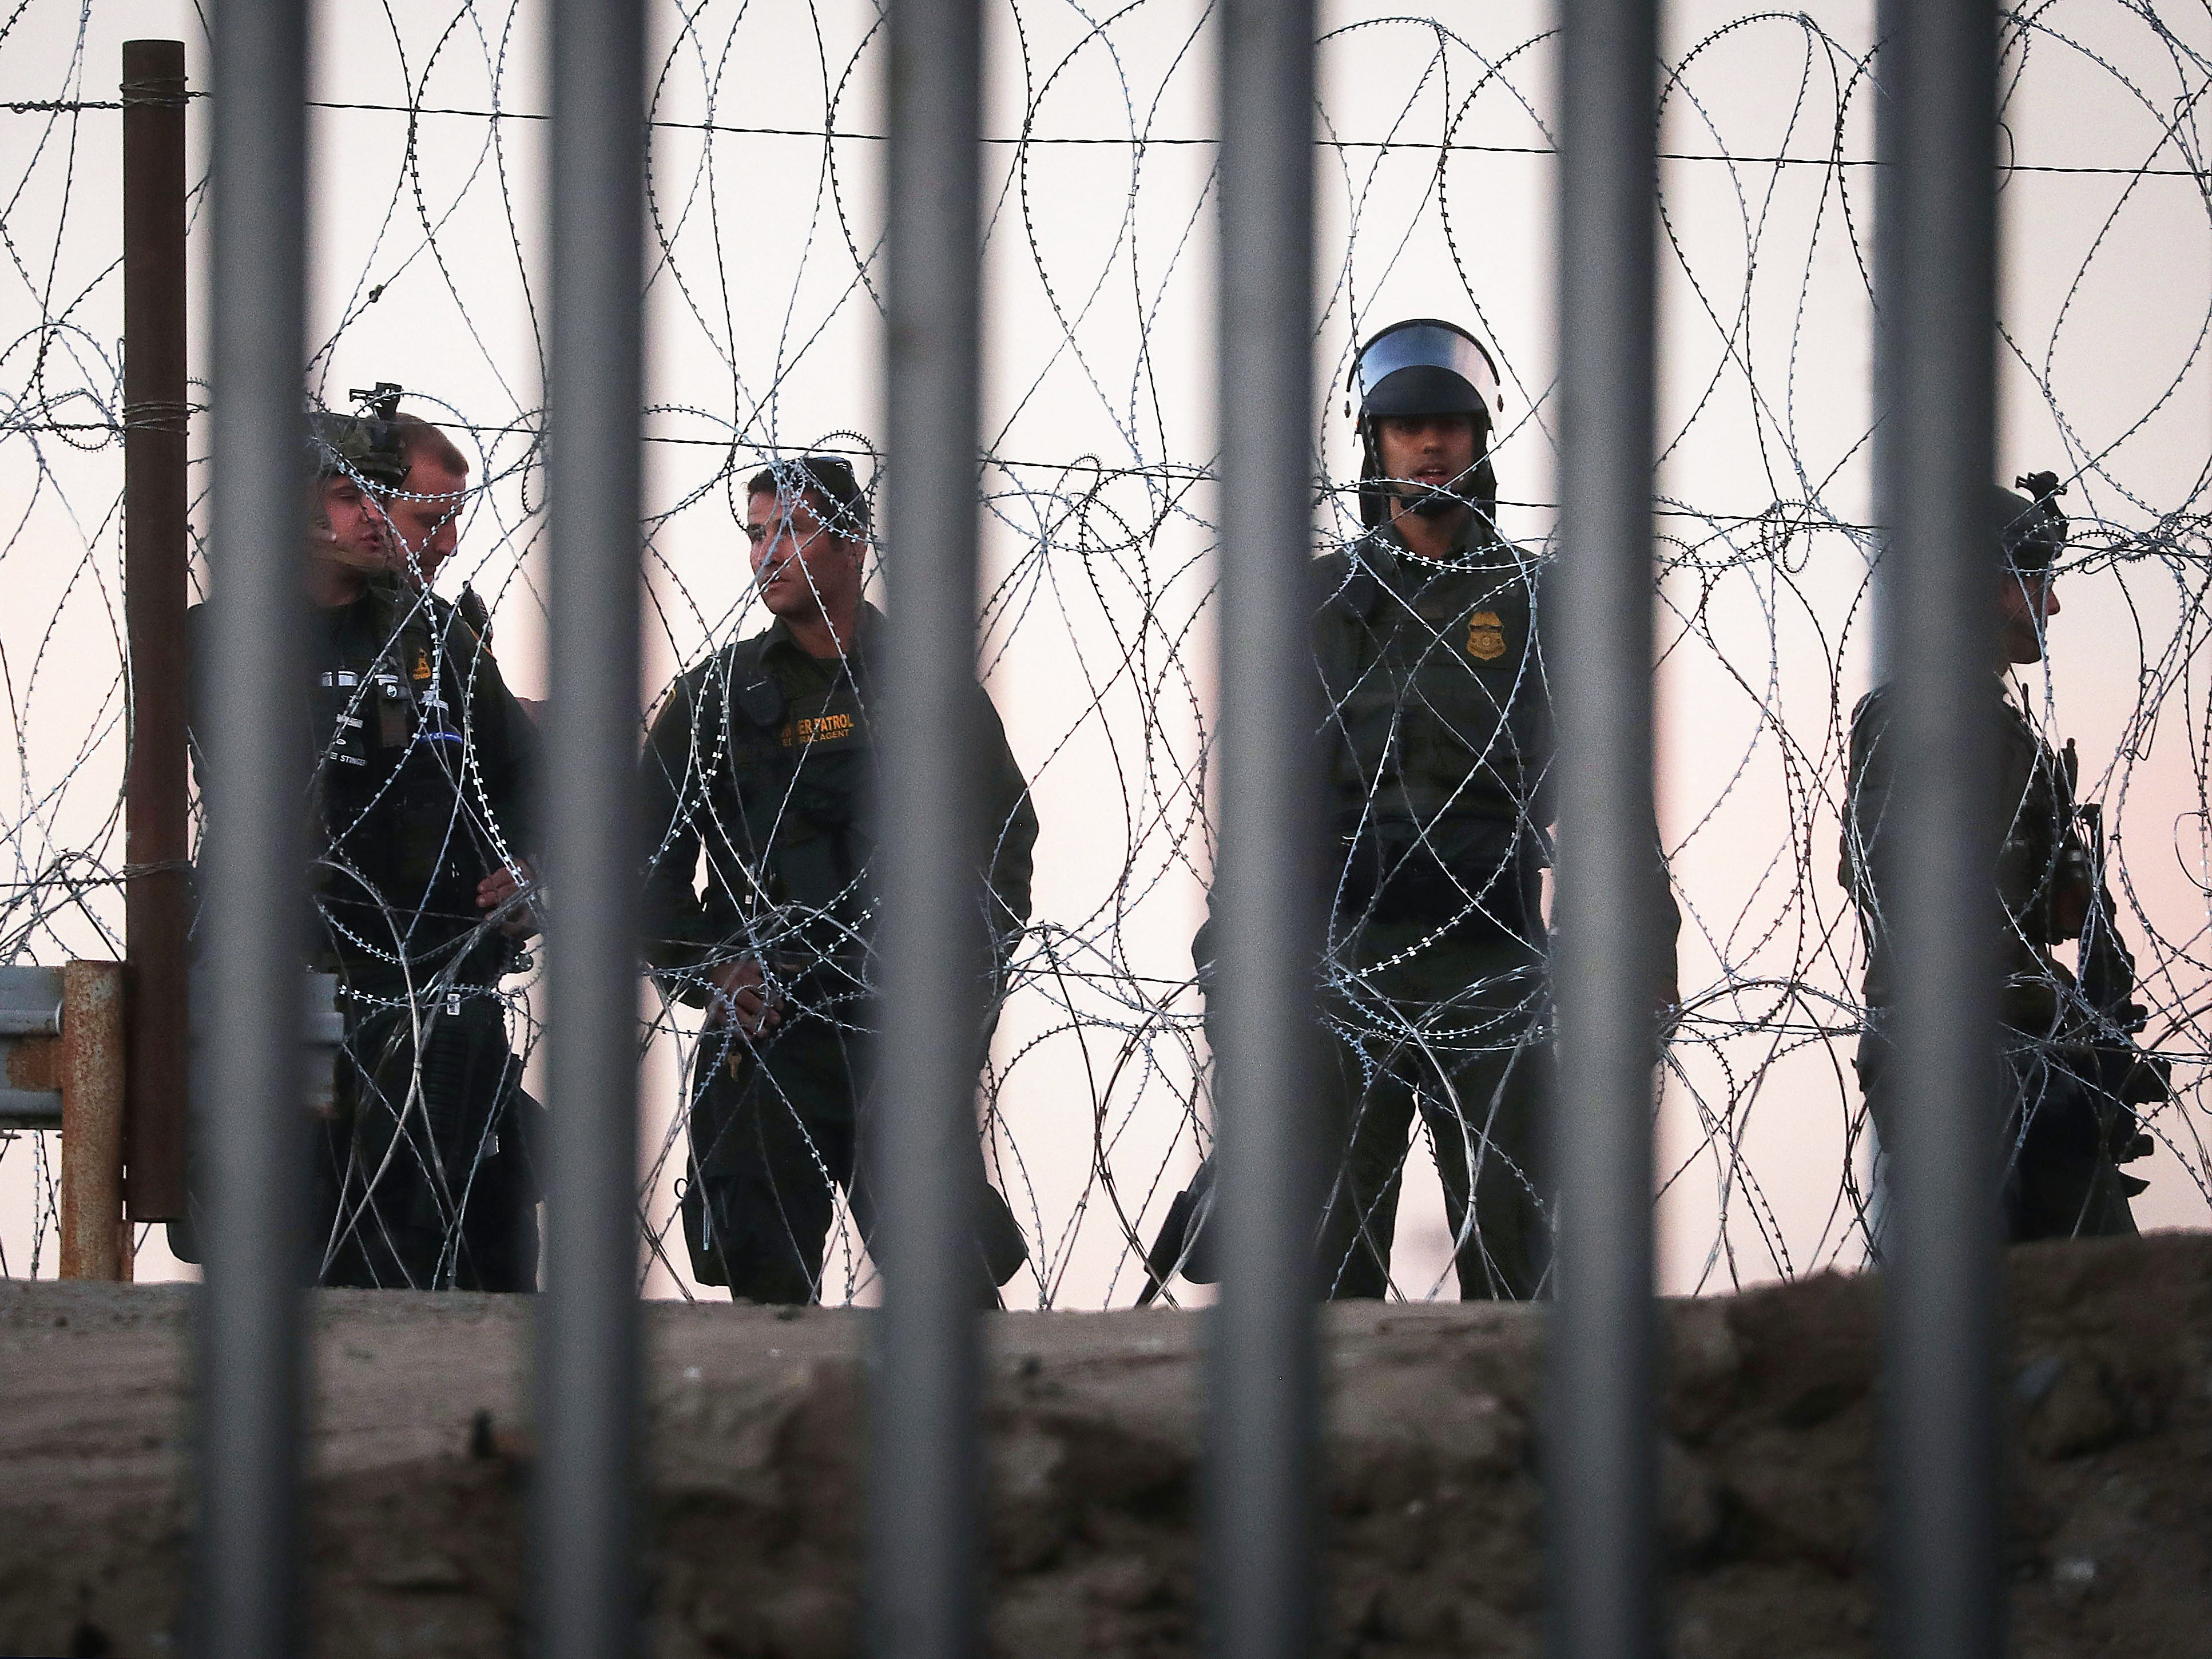 U.S. Border Patrol agents stand watch on the U.S. side of the U.S.-Mexico border fence on Nov. 26, 2018 in Tijuana, Mexico.